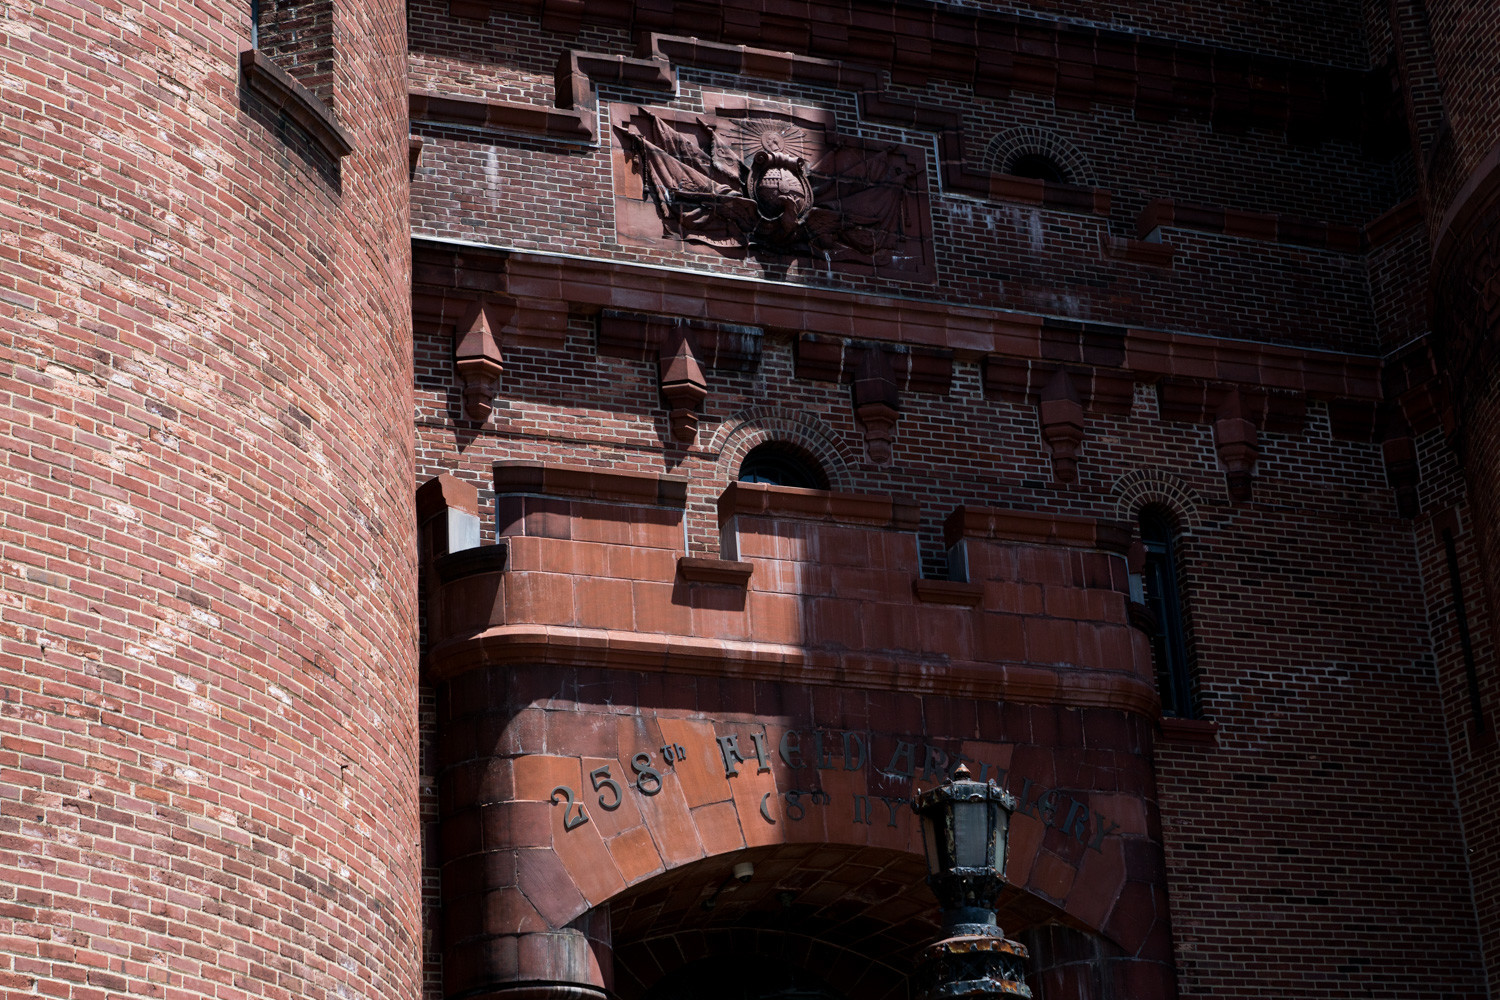 The century-old architecture gives the Kingsbridge Armory along Jerome Avenue near West 195th Street a bit of a medieval charm. Just like the European castles it's designed to emulate, the armory could practically house an entire city in its 750,000-square-foot space.